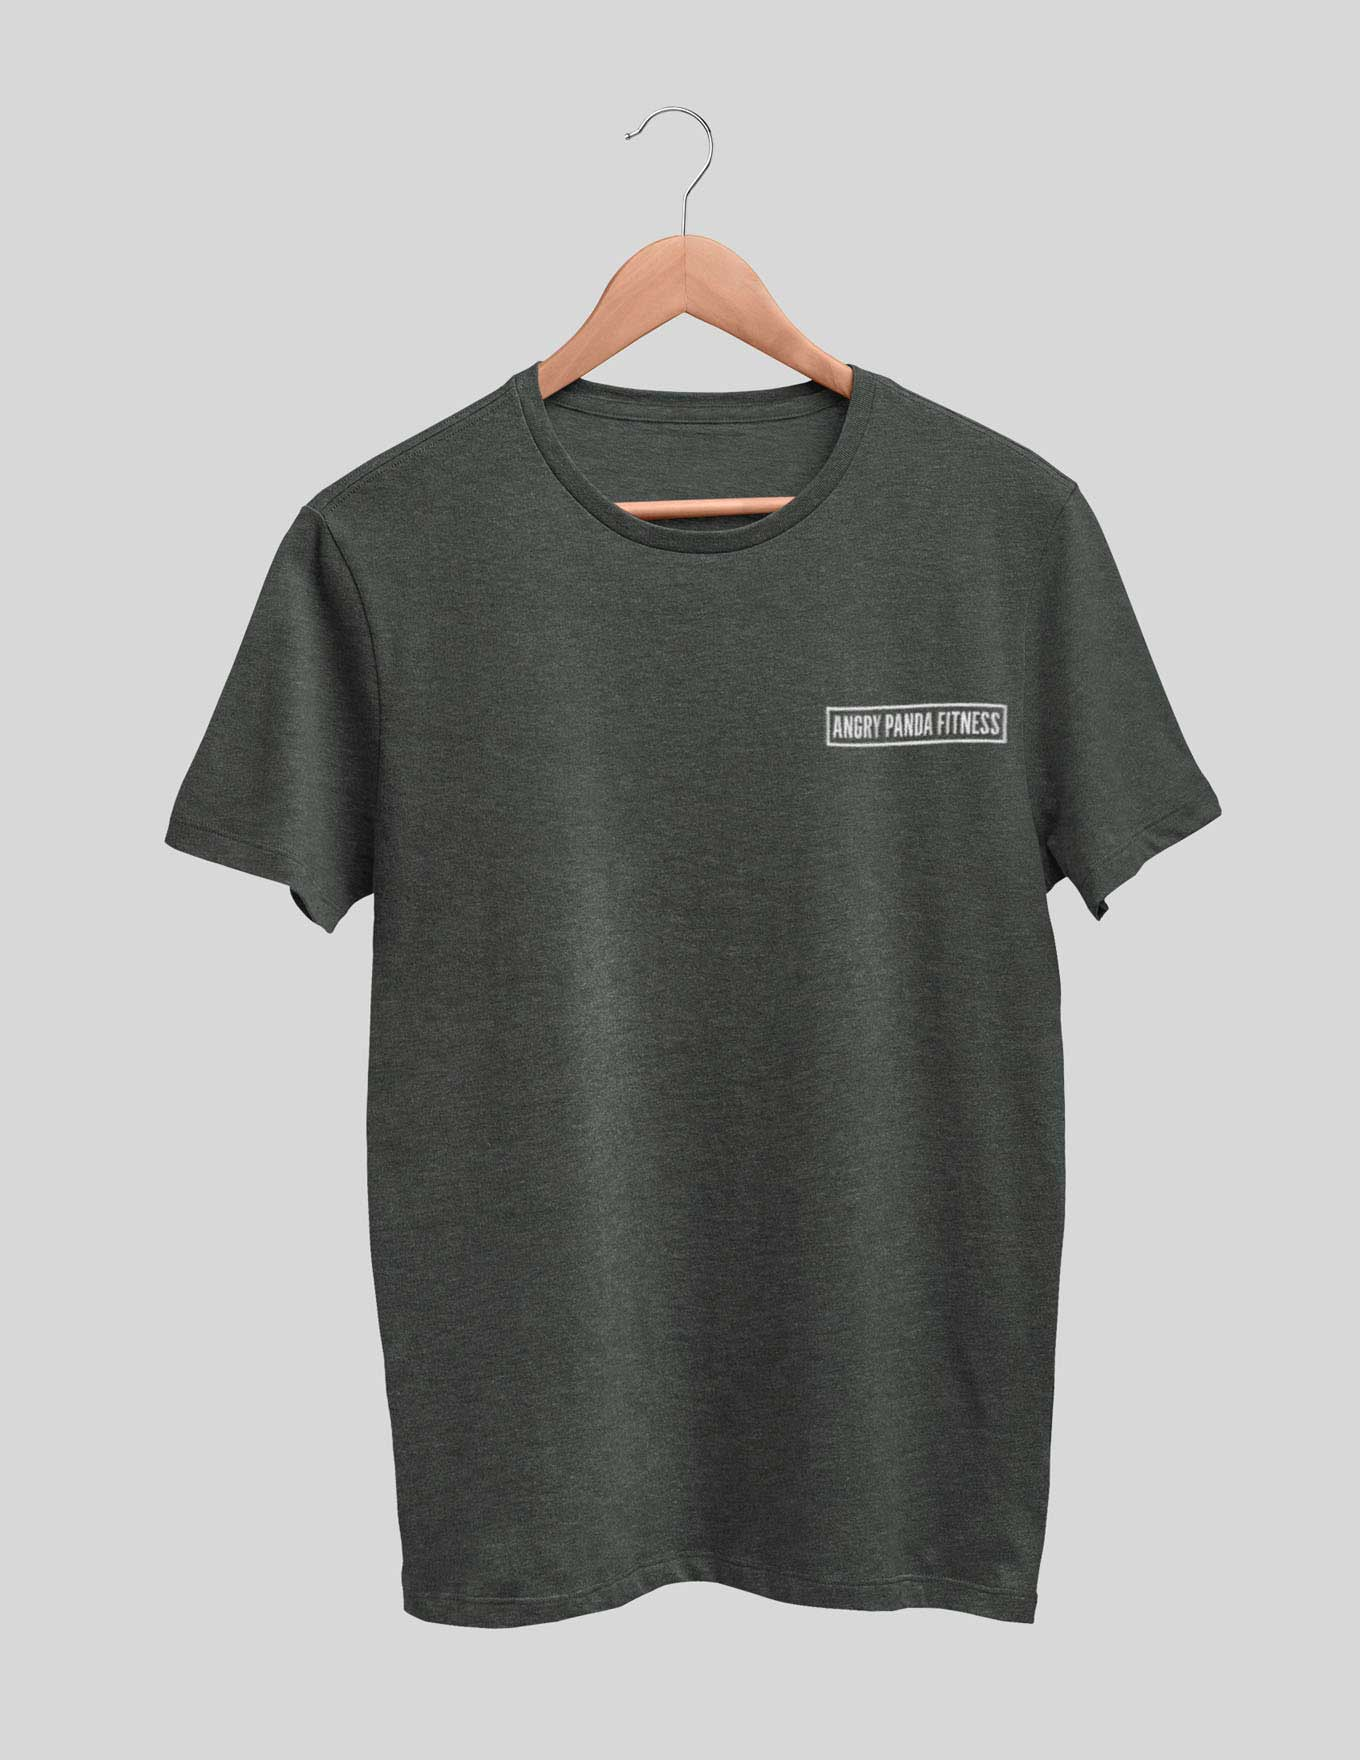 Brand Frame Embroidered Men's Tee